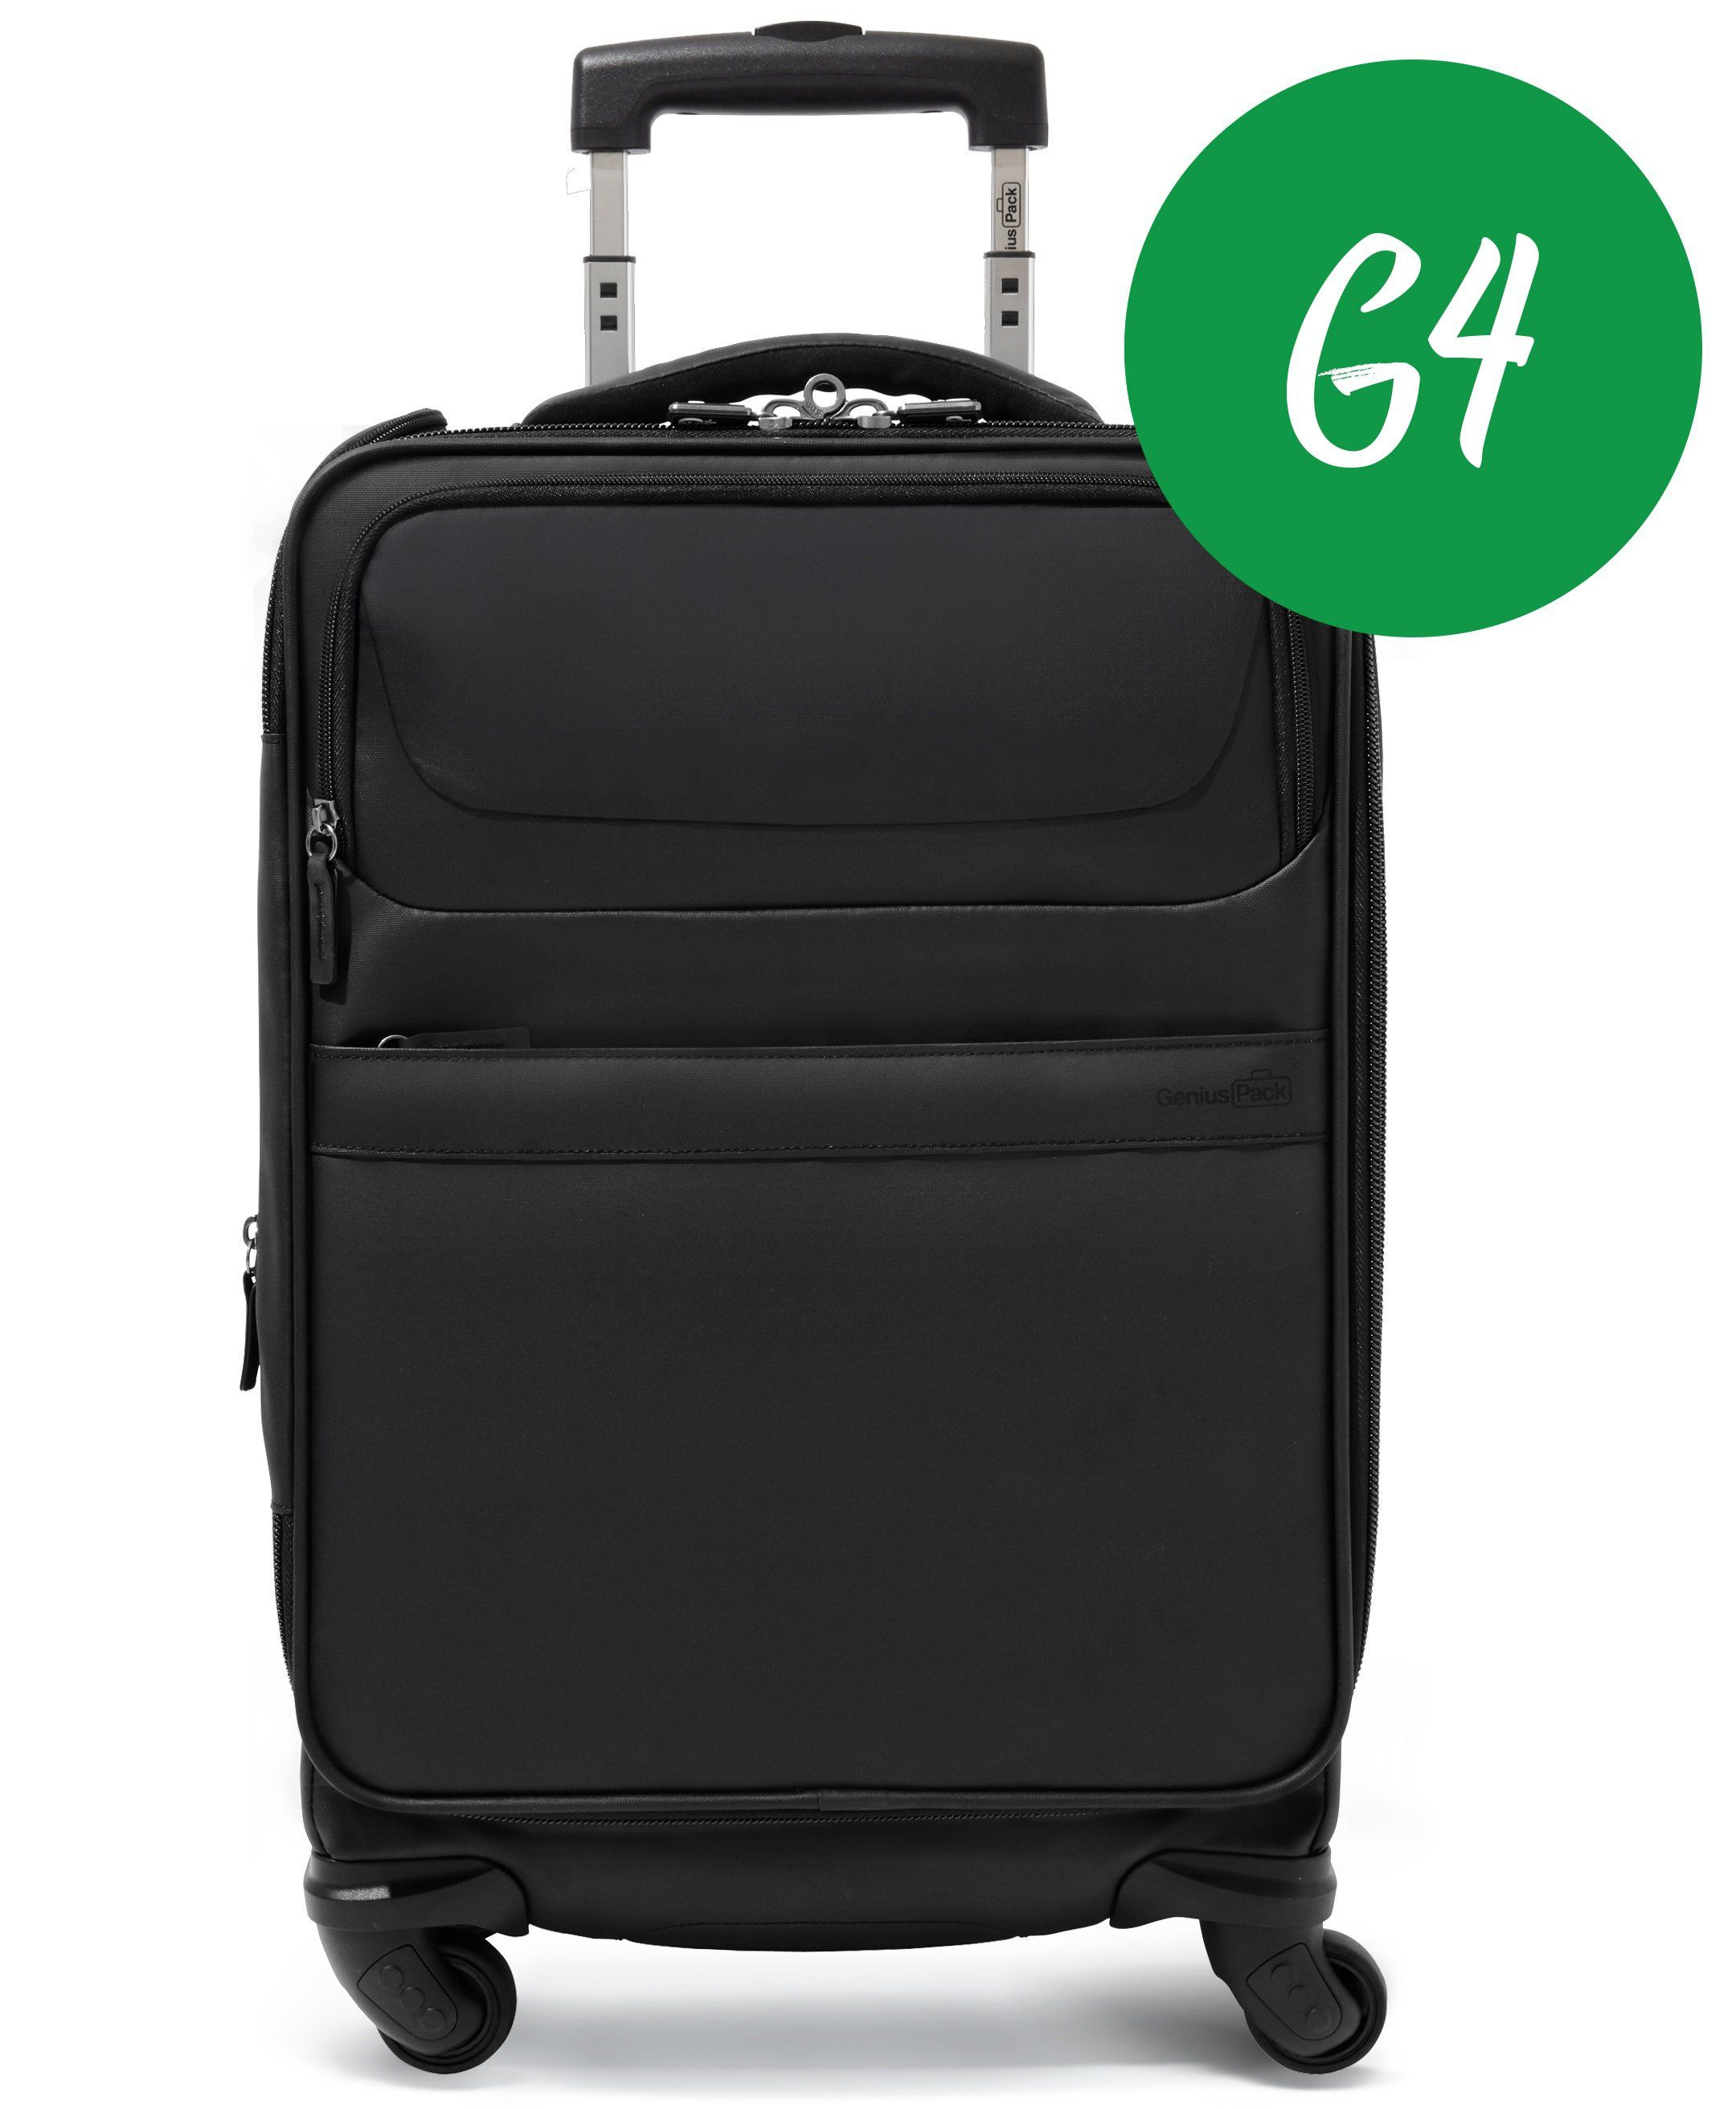 a0e430a8b4 GENIUS PACK G4 CARRY ON SPINNER from Genius Pack